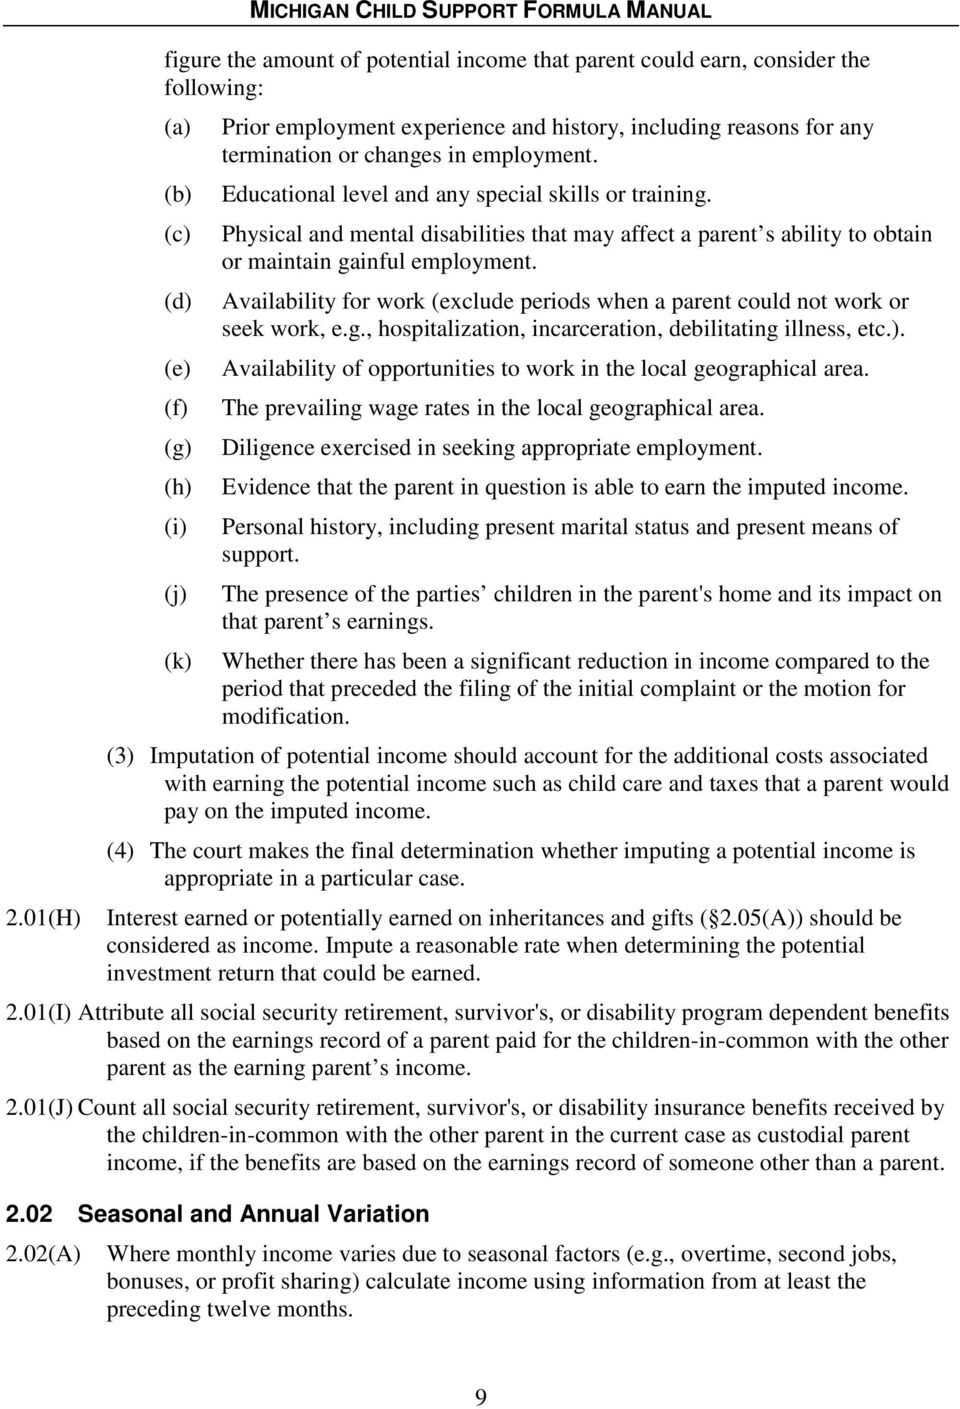 Physical and mental disabilities that may affect a parent s ability to obtain or maintain gainful employment. Availability for work (exclude periods when a parent could not work or seek work, e.g., hospitalization, incarceration, debilitating illness, etc.